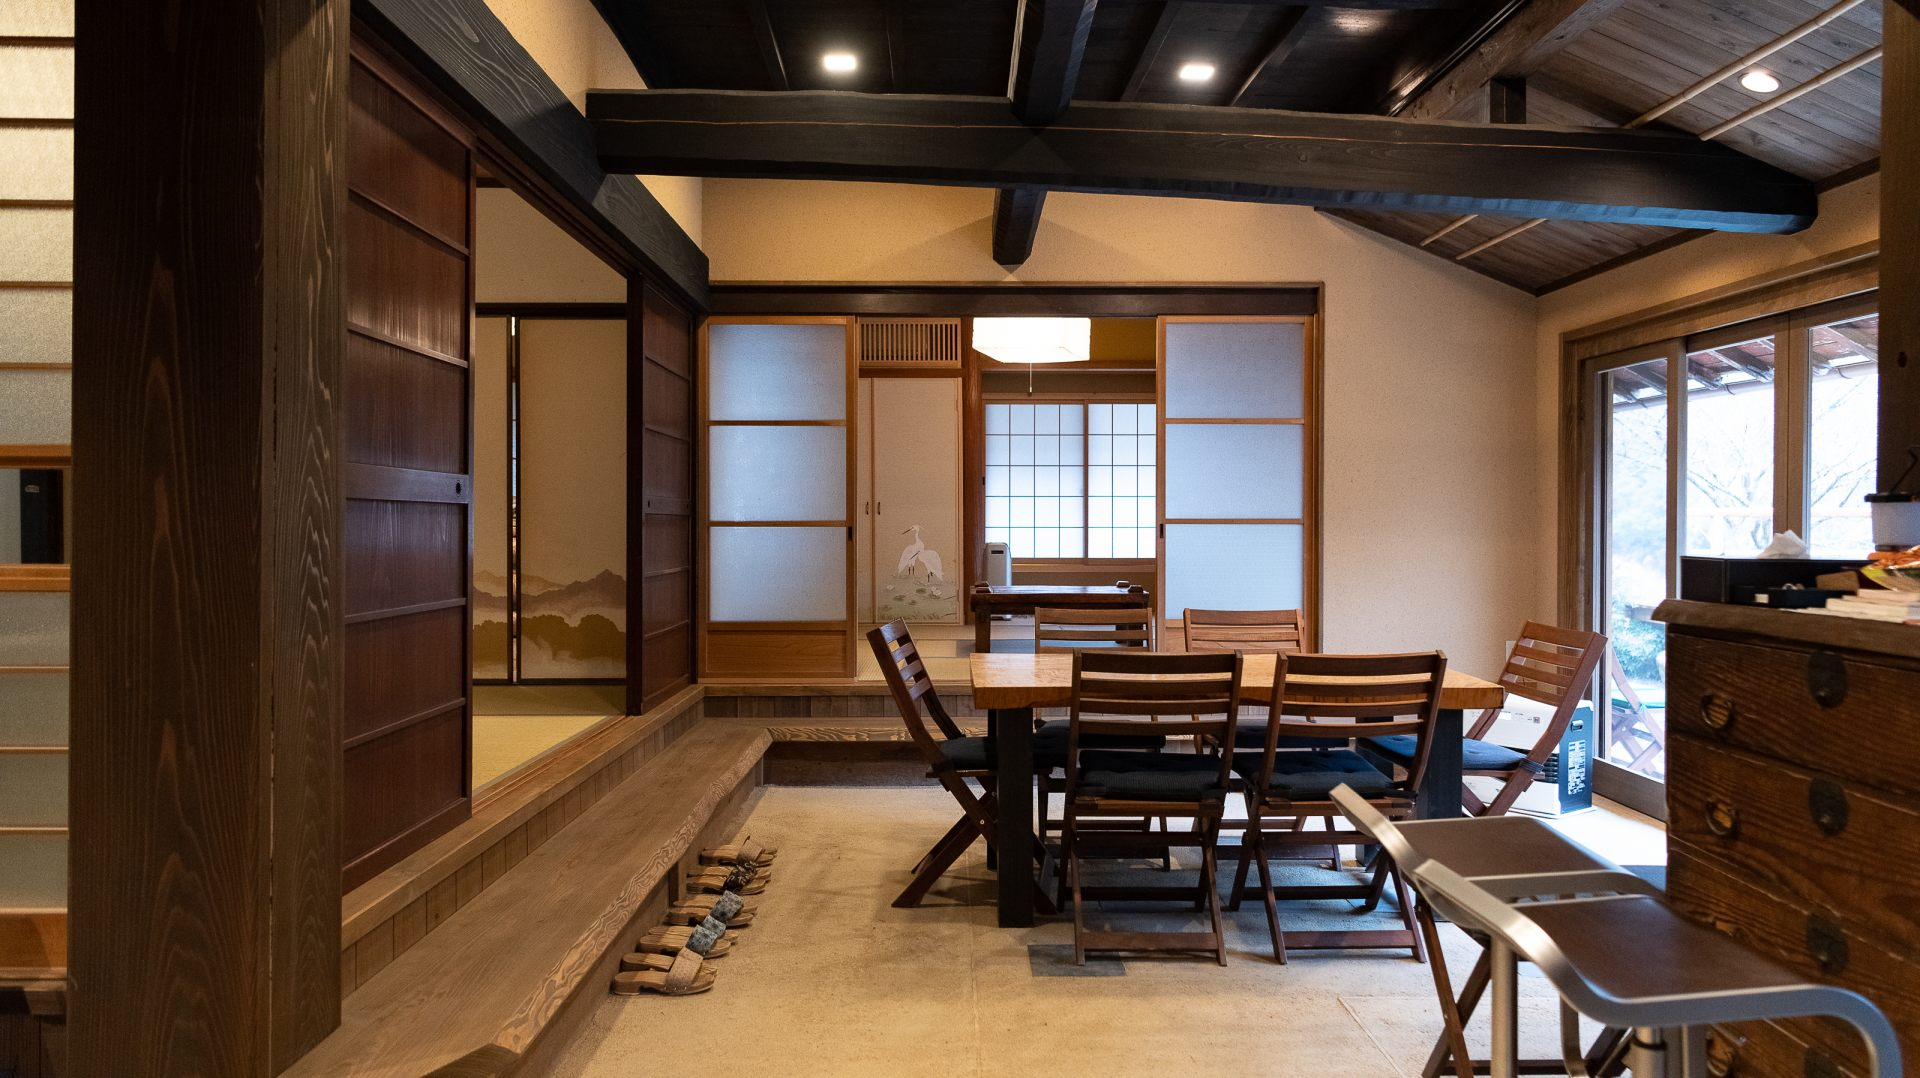 It is a modern atmosphere including a Japanese-style room and porch where you can relax comfortably.